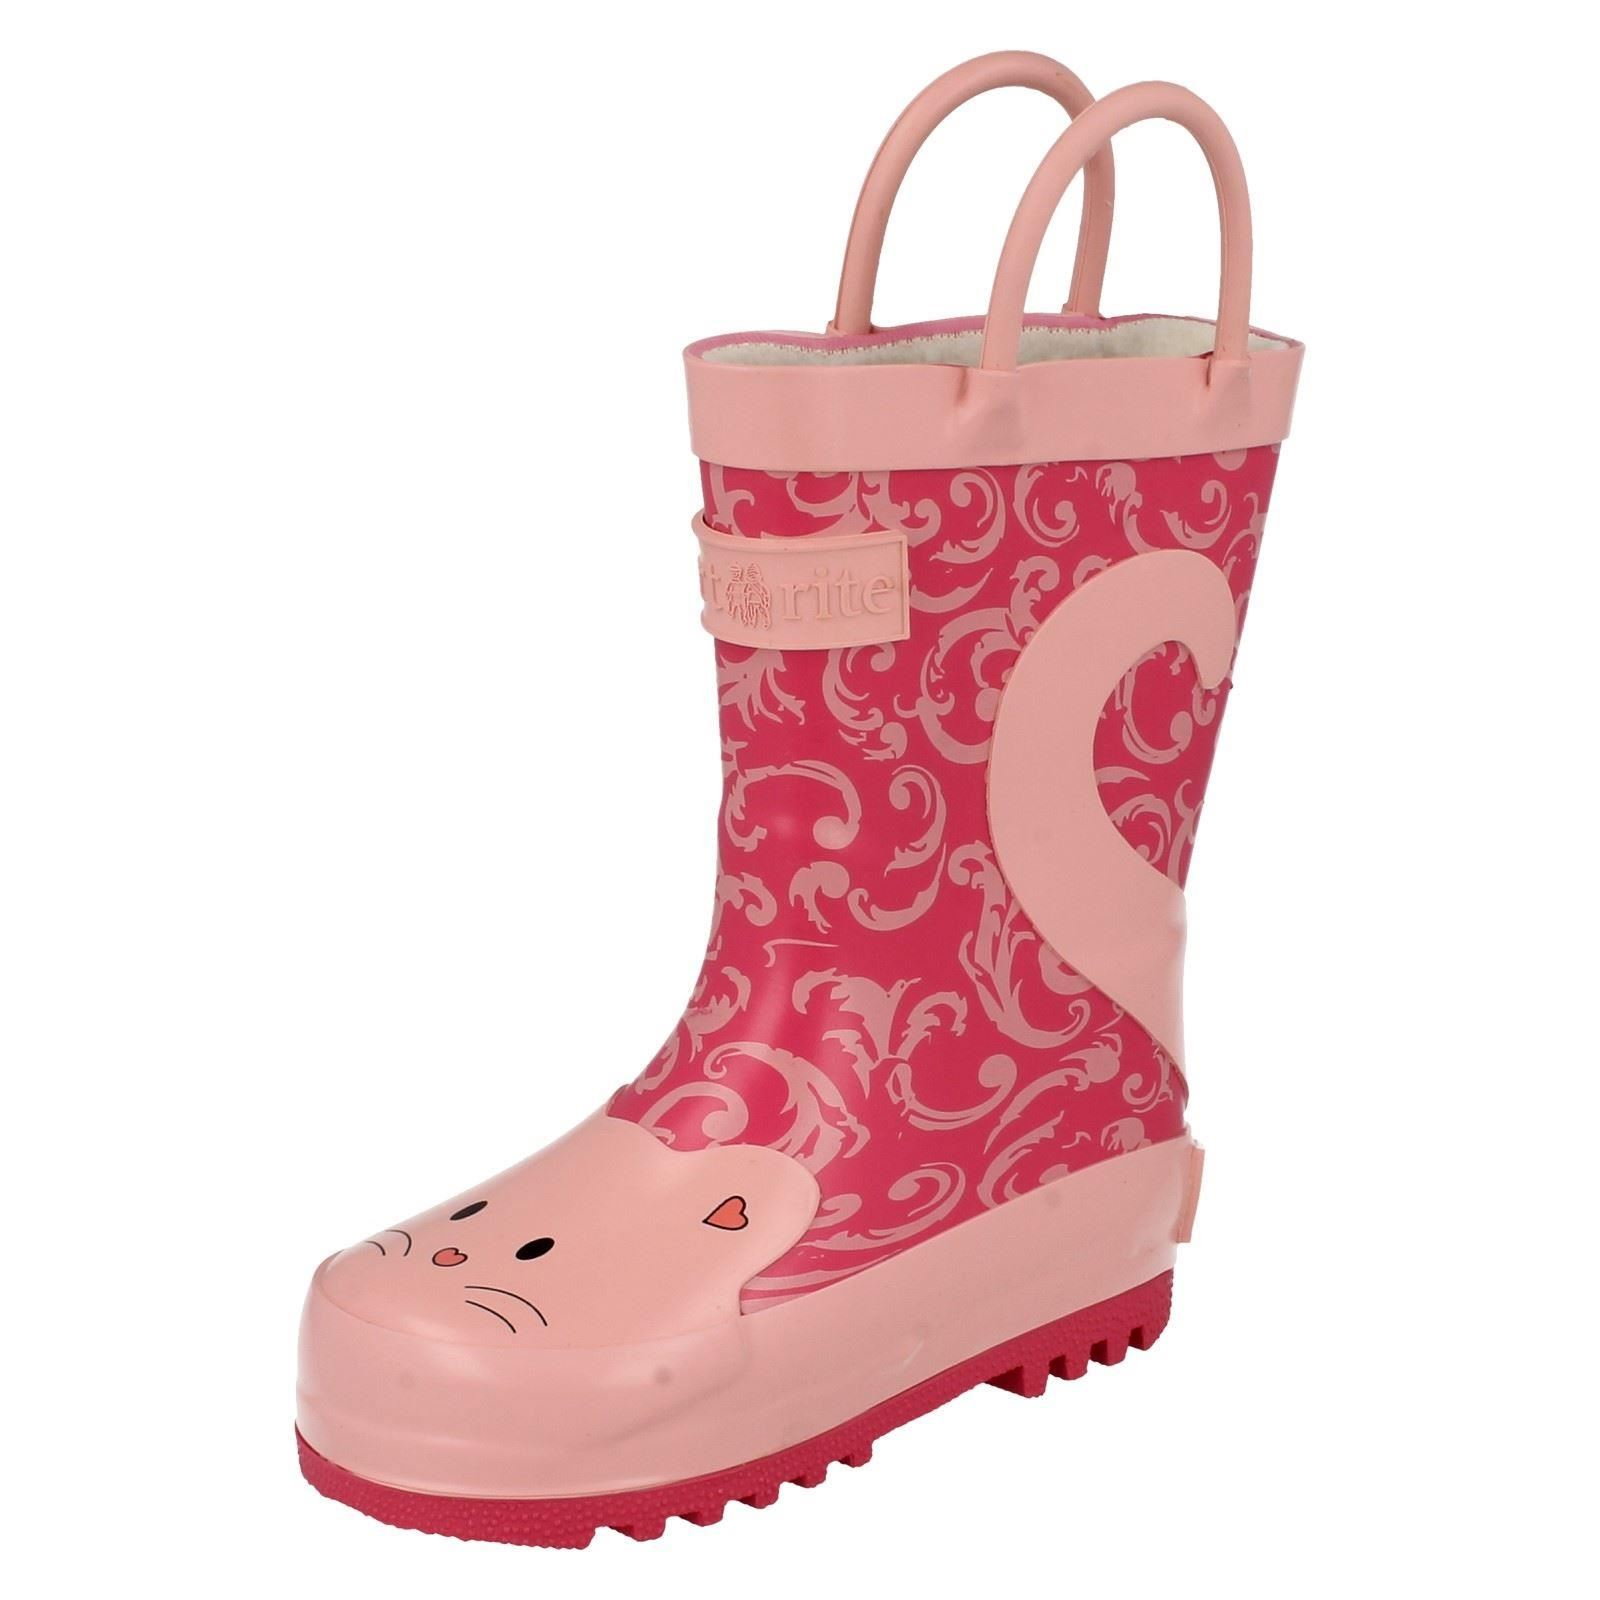 Chicas Startrite warmlined Wellingtons Gato Con Botas